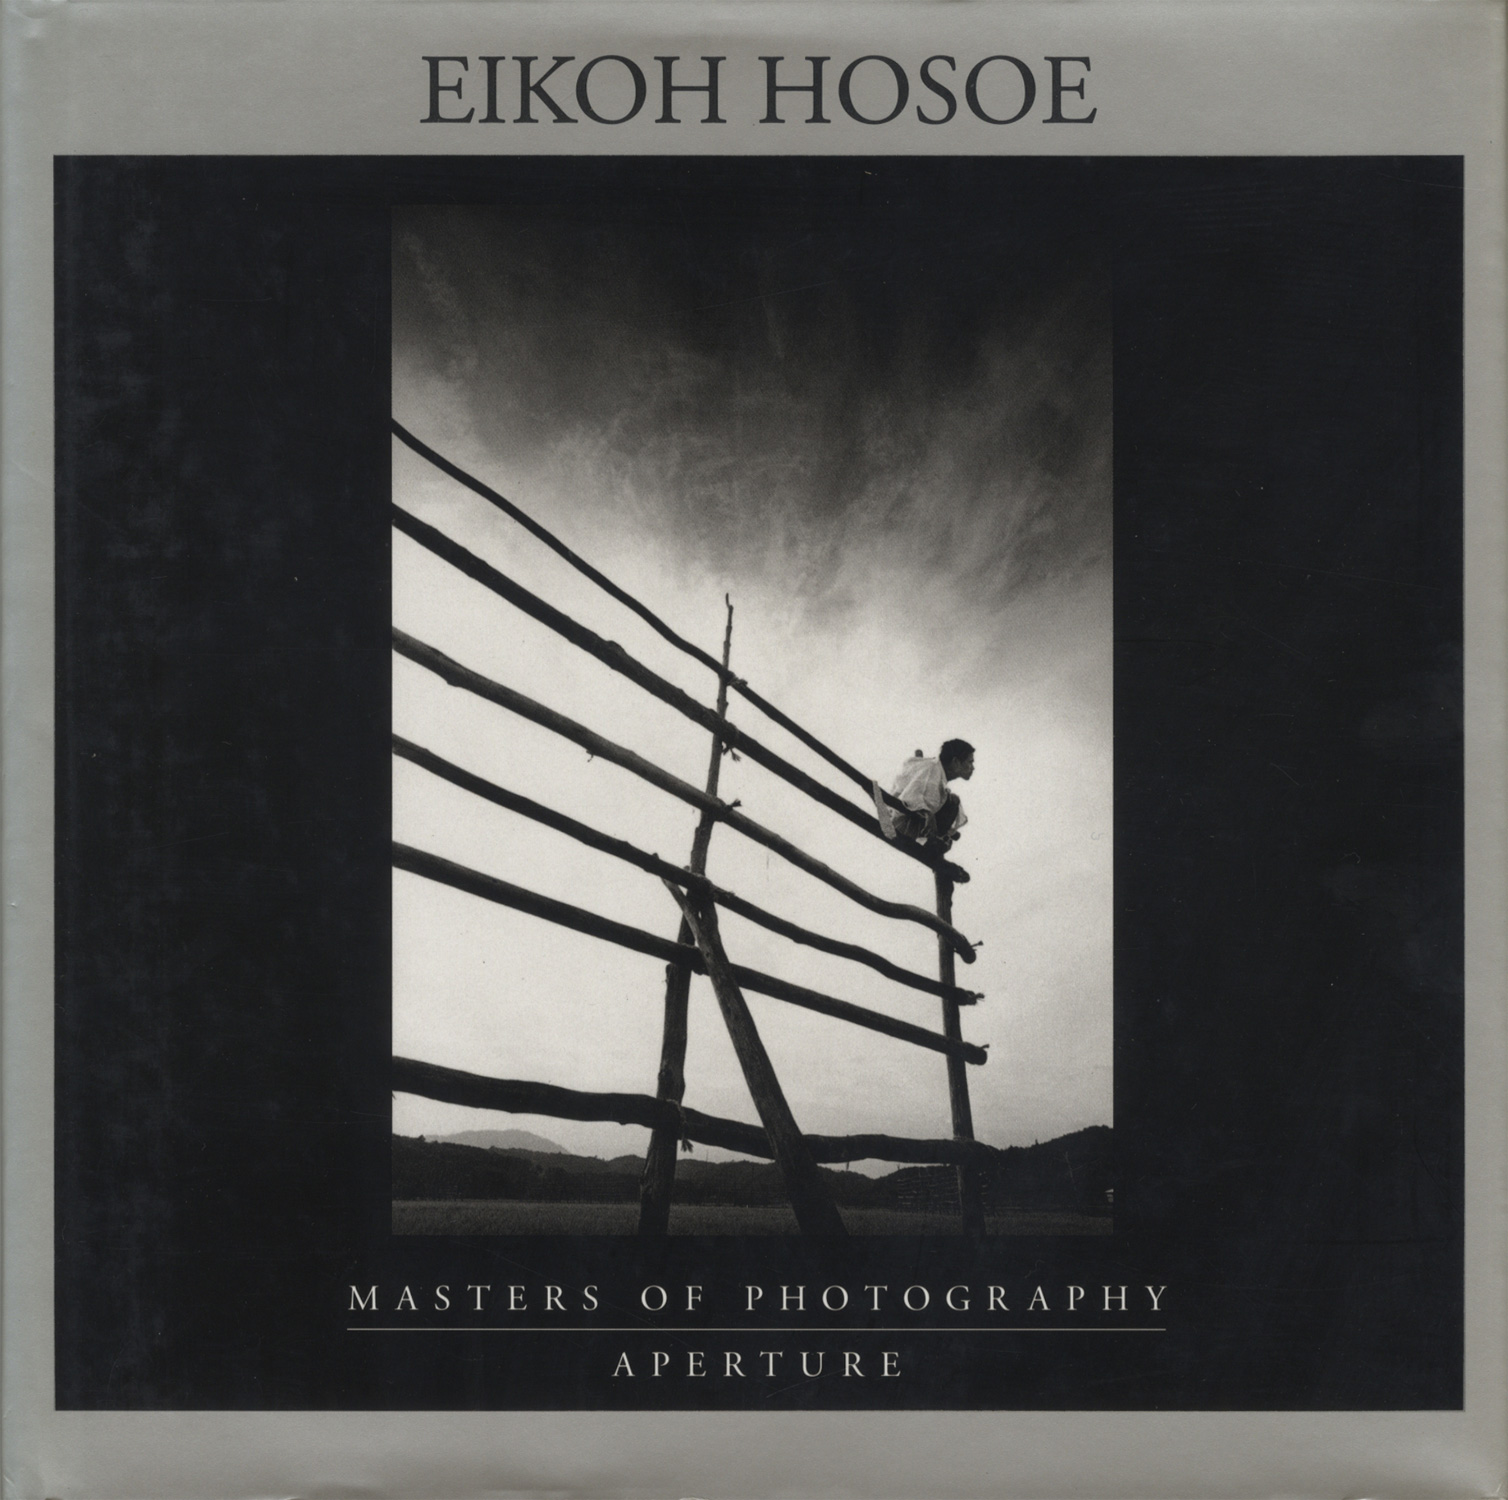 Eikoh Hosoe With an Essy by Mark Holborn